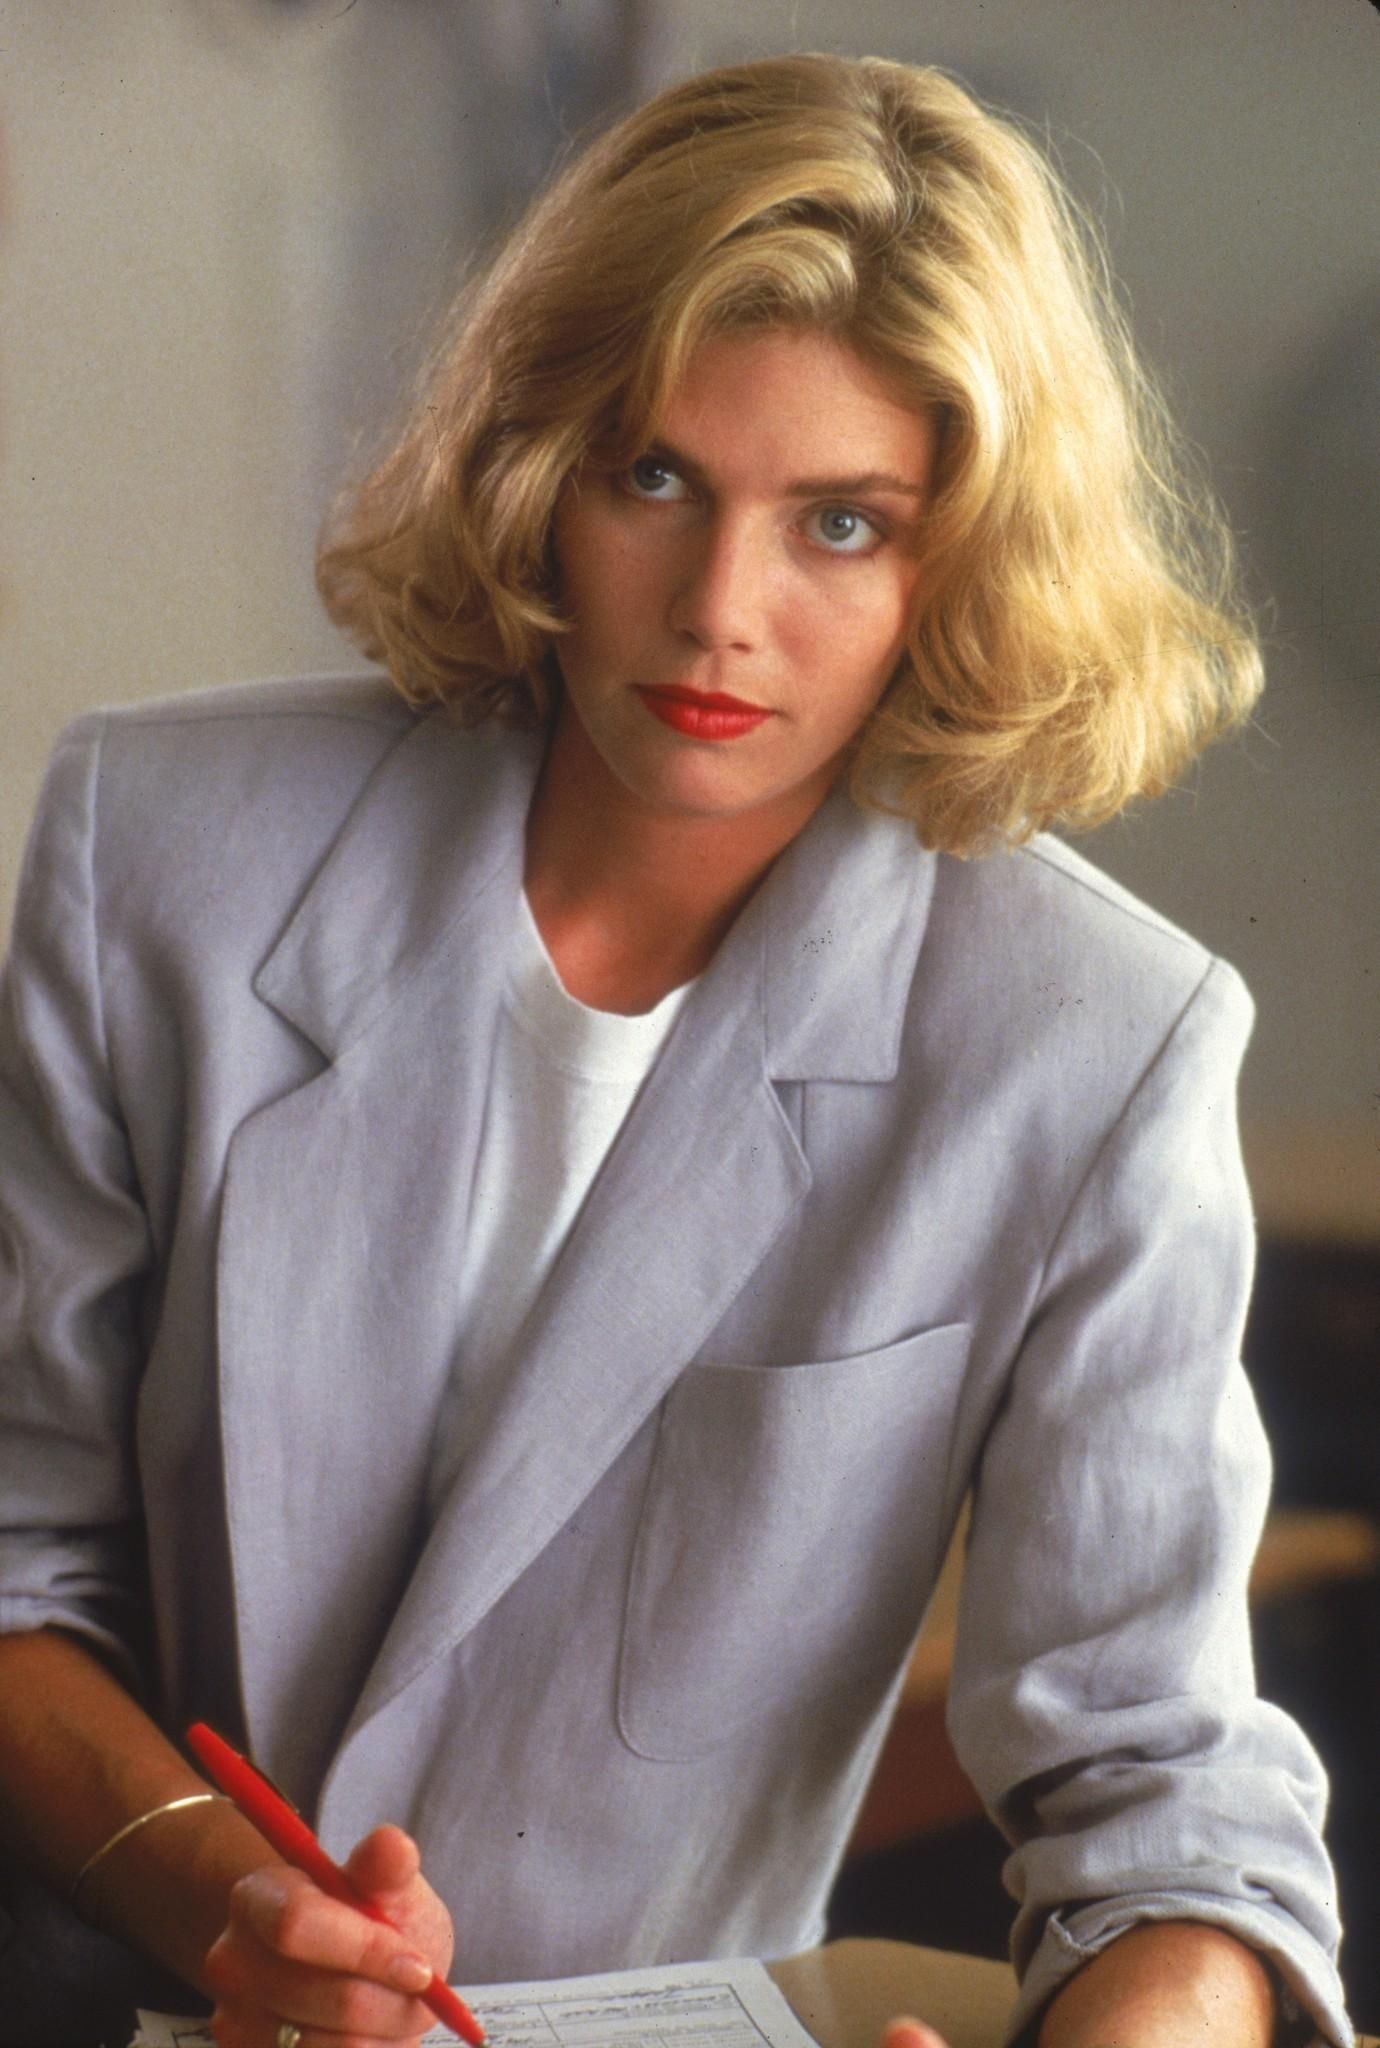 kelly mcgillis 2015kelly mcgillis and her wife, kelly mcgillis, kelly mcgillis 2015, kelly mcgillis wiki, kelly mcgillis biography, kelly mcgillis family guy, kelly mcgillis picture, kelly mcgillis net worth, kelly mcgillis character top gun, kelly mcgillis imdb, kelly mcgillis top gun outfits, kelly mcgillis gay